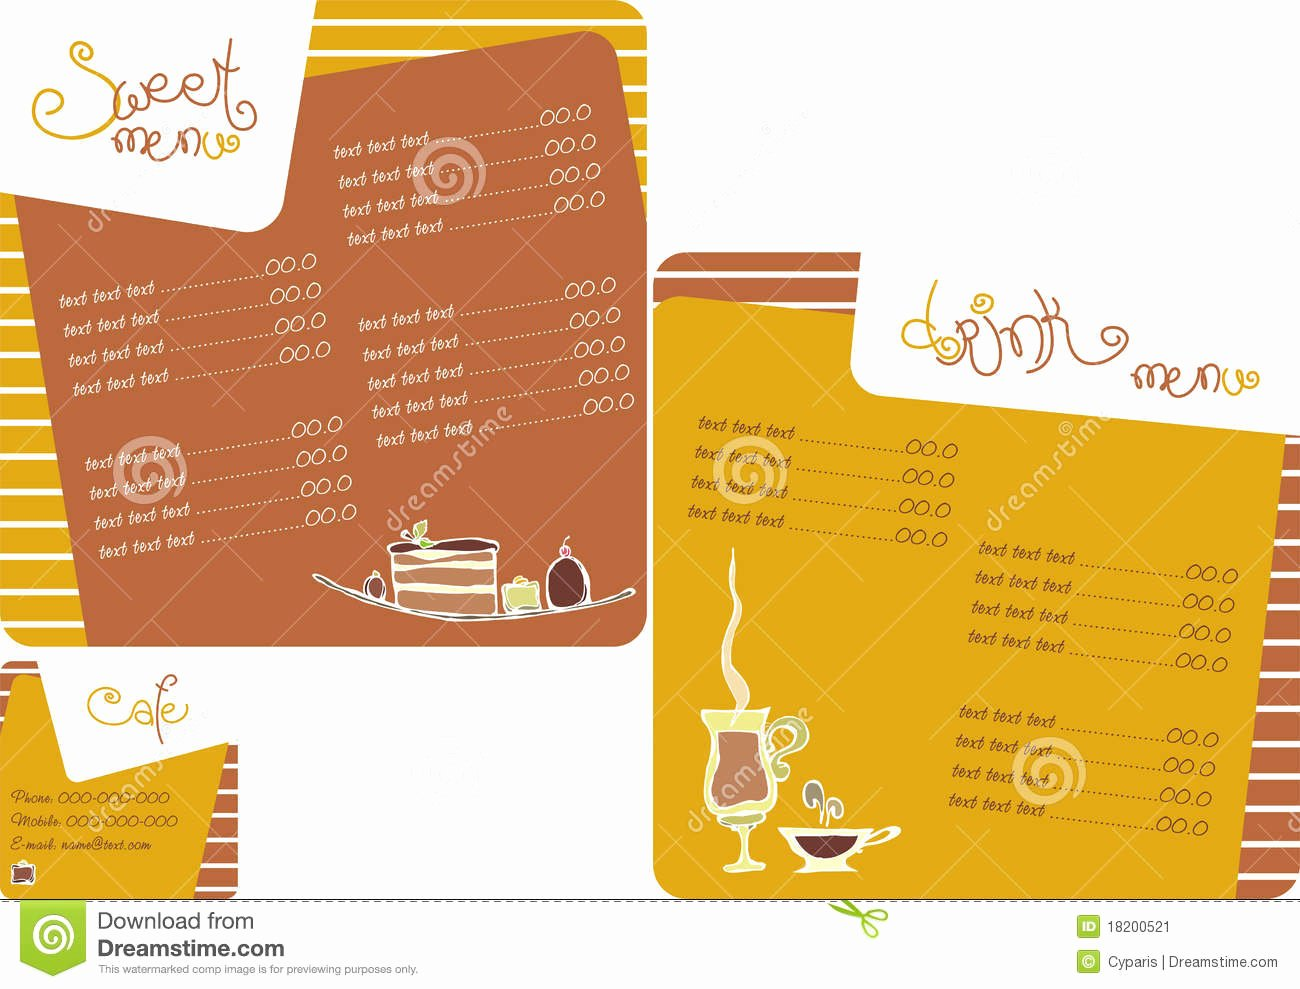 Coffee Shop Menu Template Lovely Template Menu for Coffee Shop Stock Vector Illustration